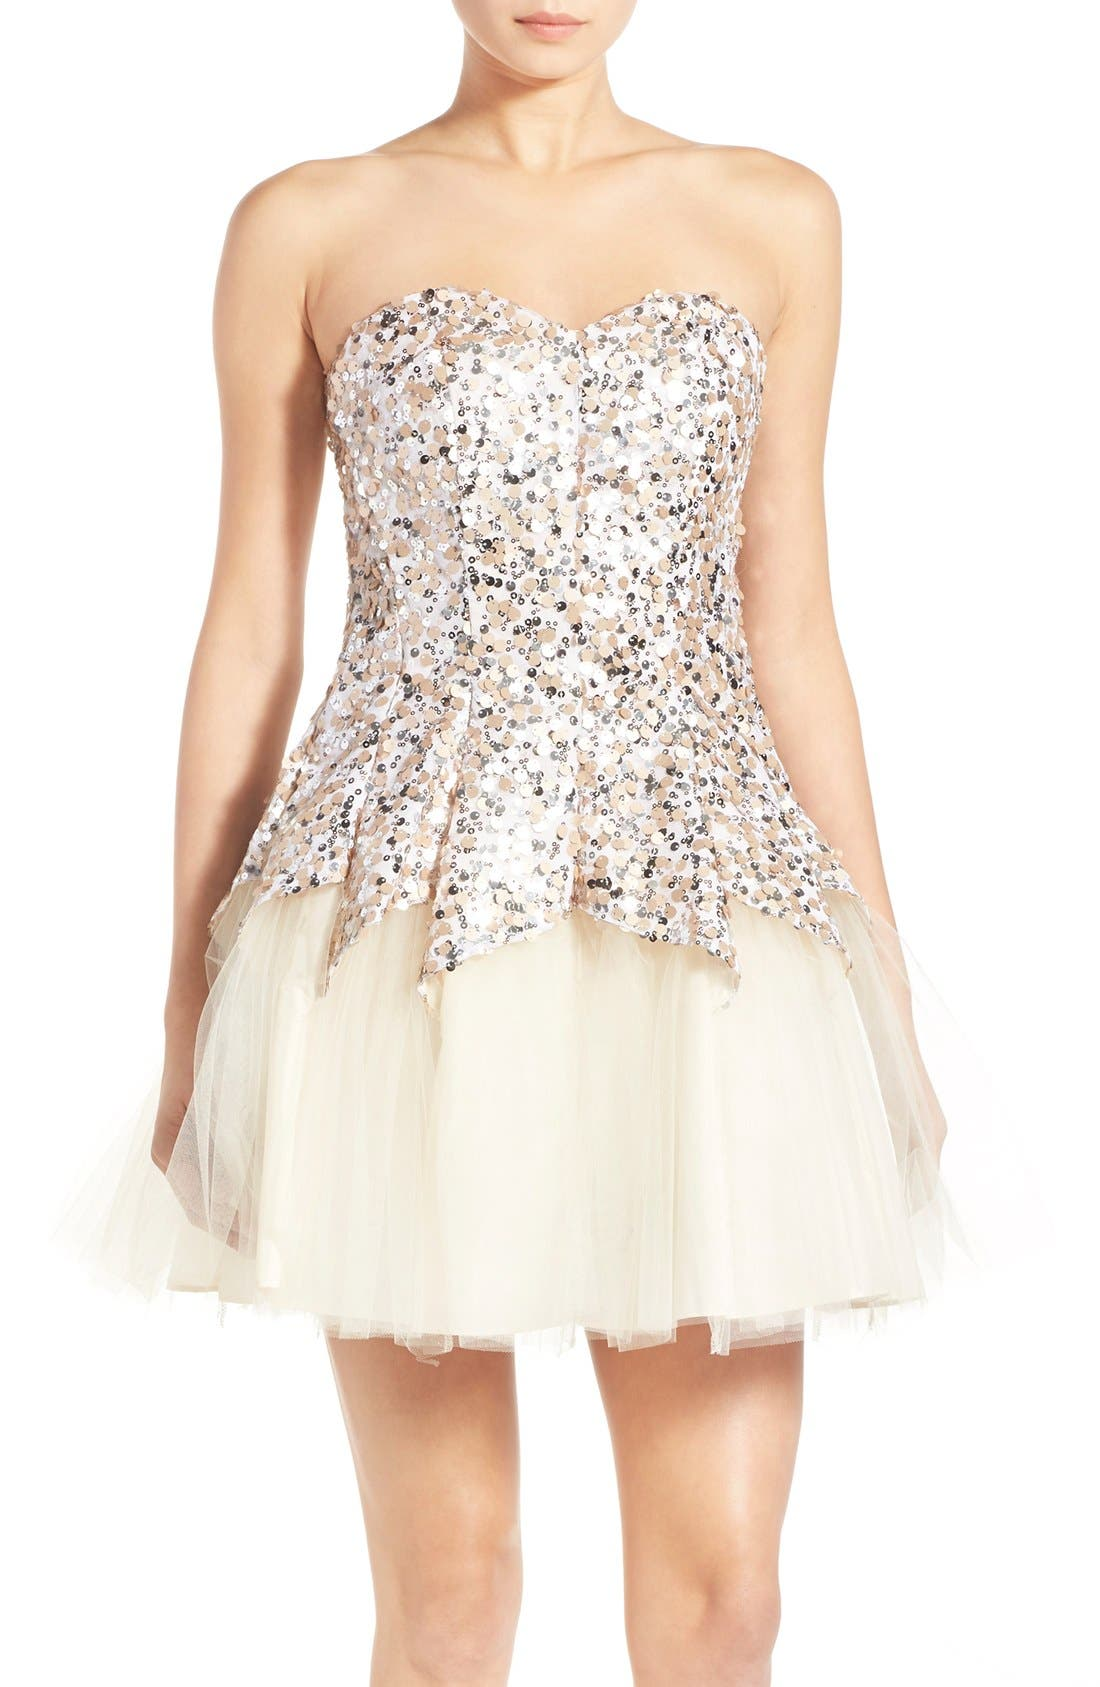 Main Image - Steppin Out Sequin Tulip Dress